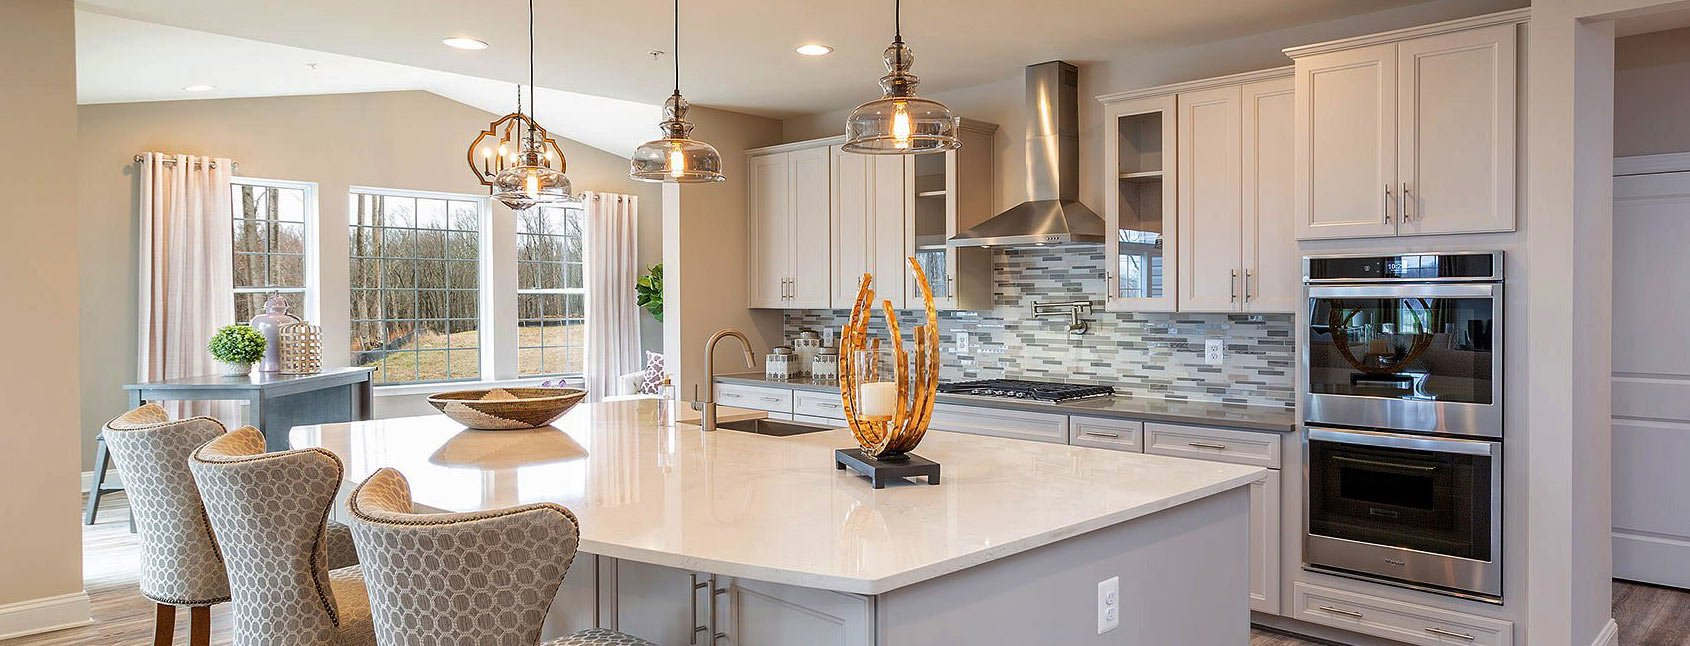 Silver Maple kitchen with large island and modern decor